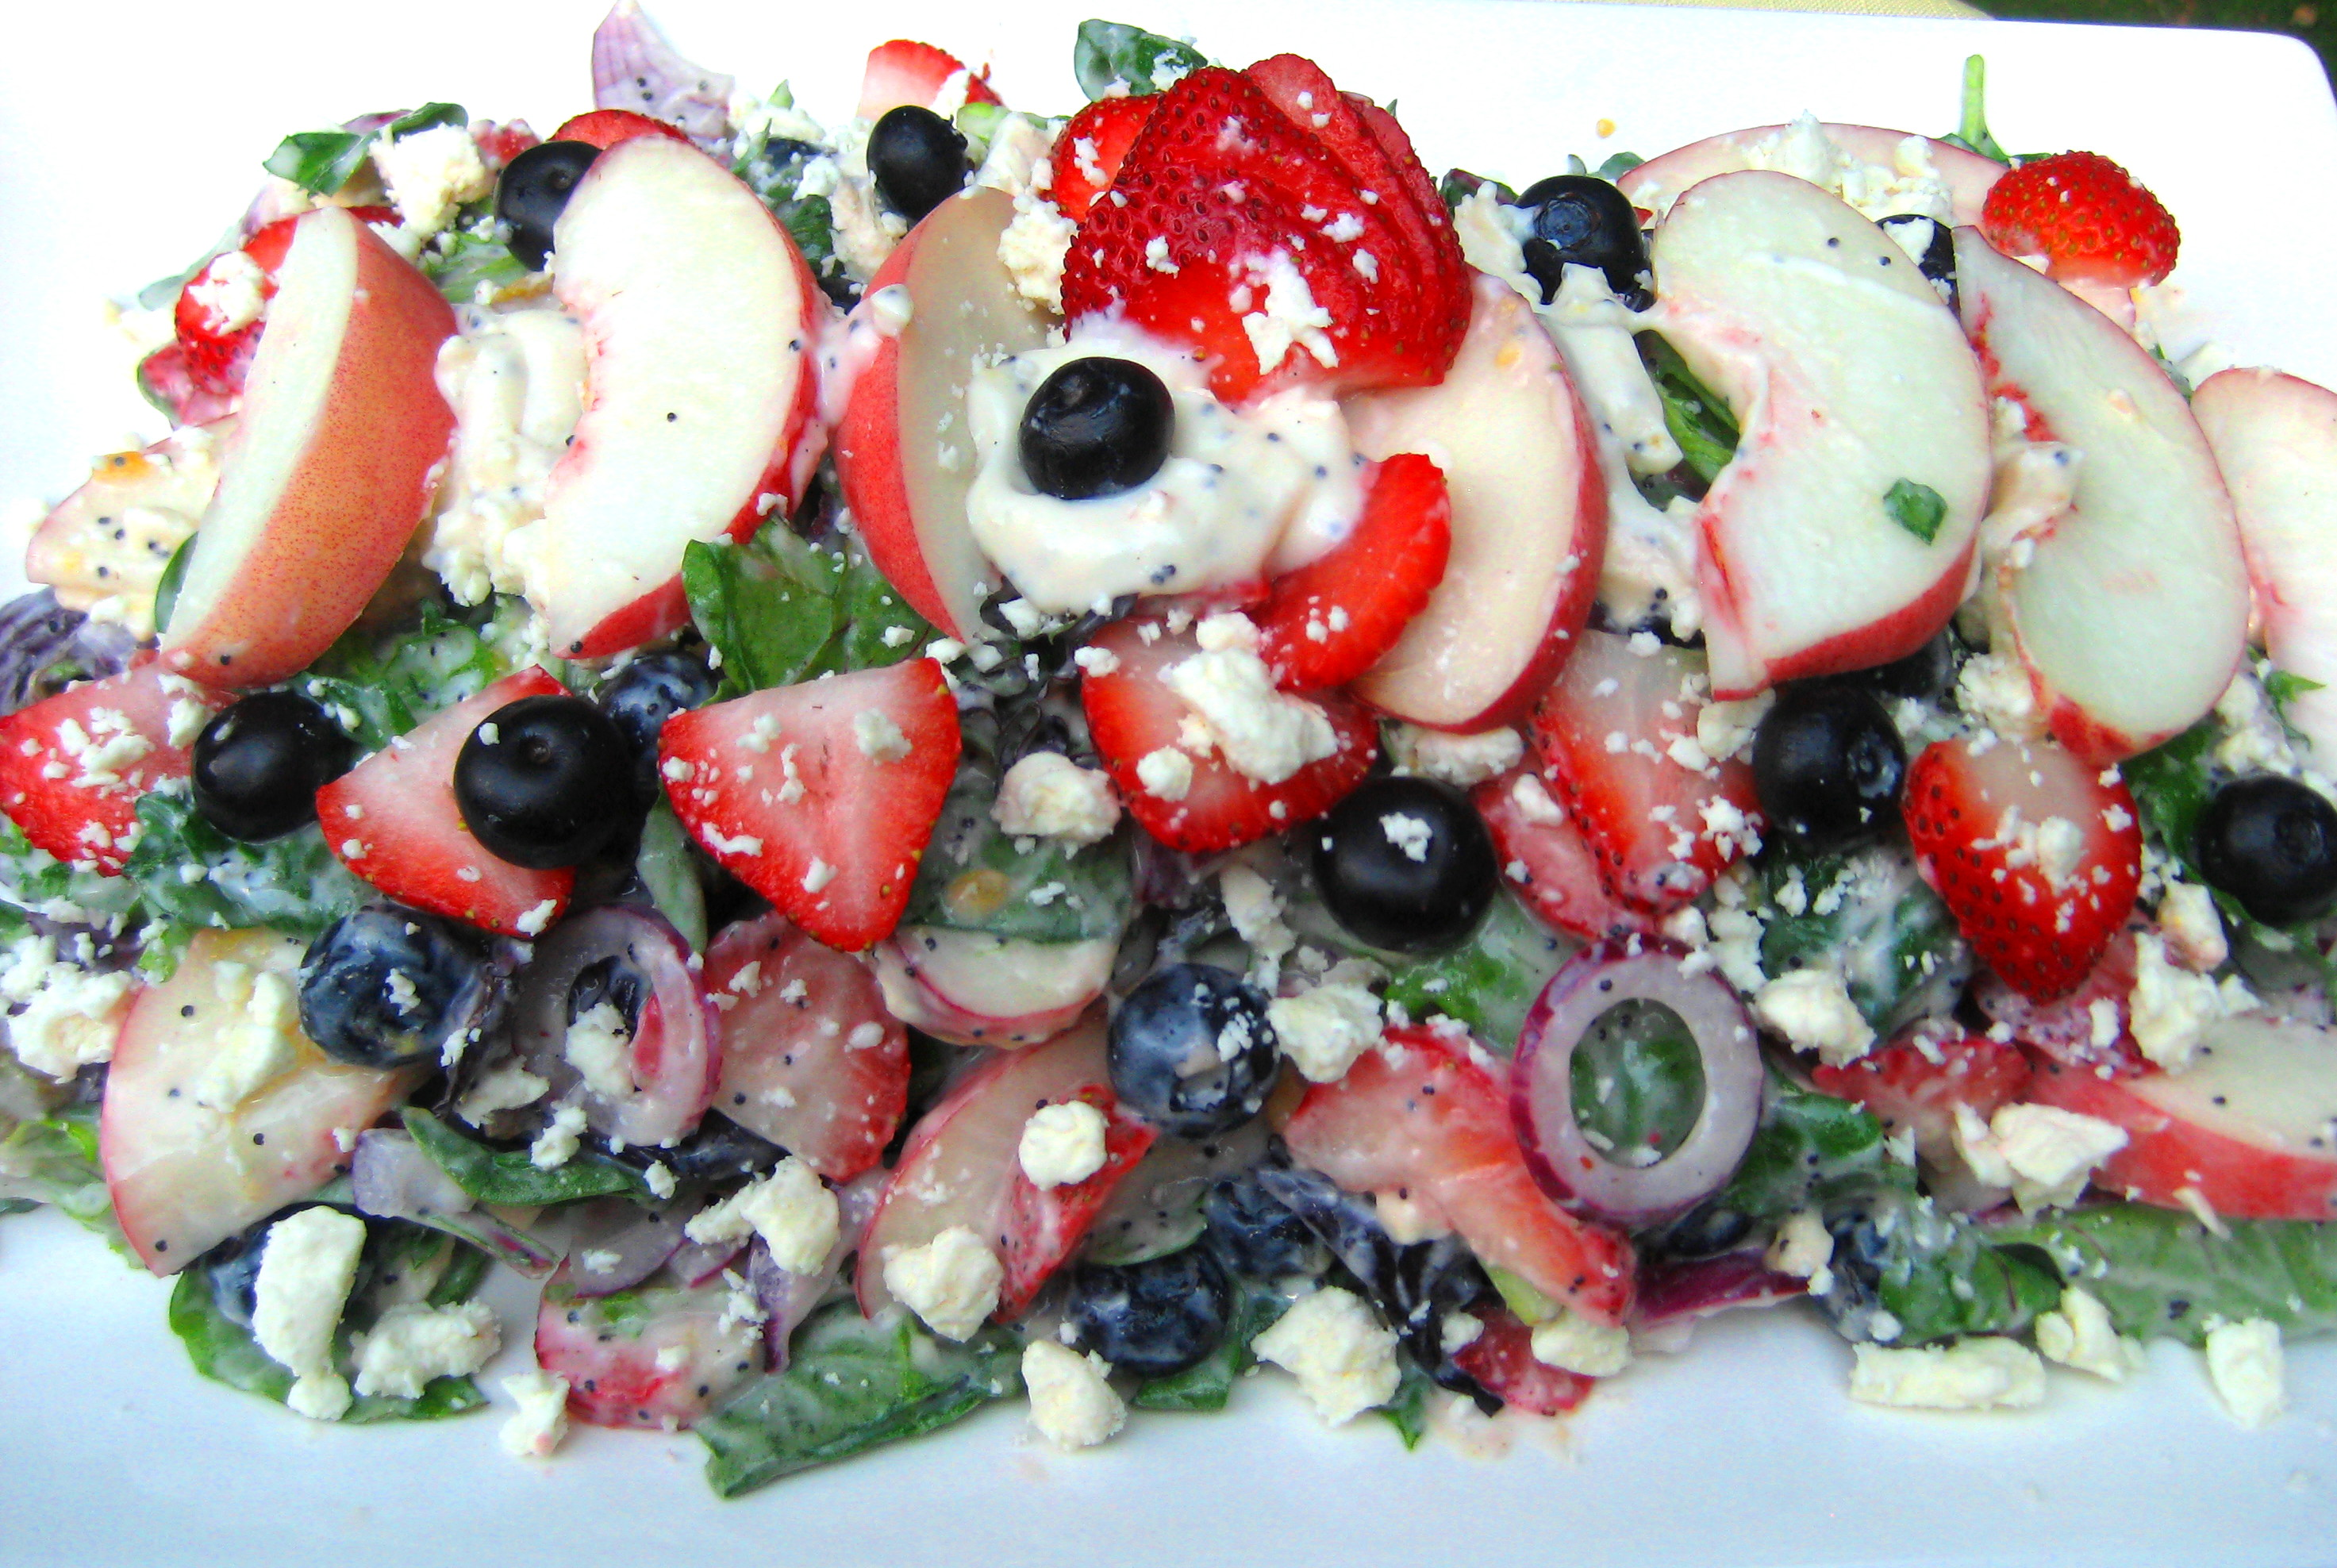 Peaches 'n Berries, Red Onion, Feta  Greens with Creamy Poppy Seed  Dressing